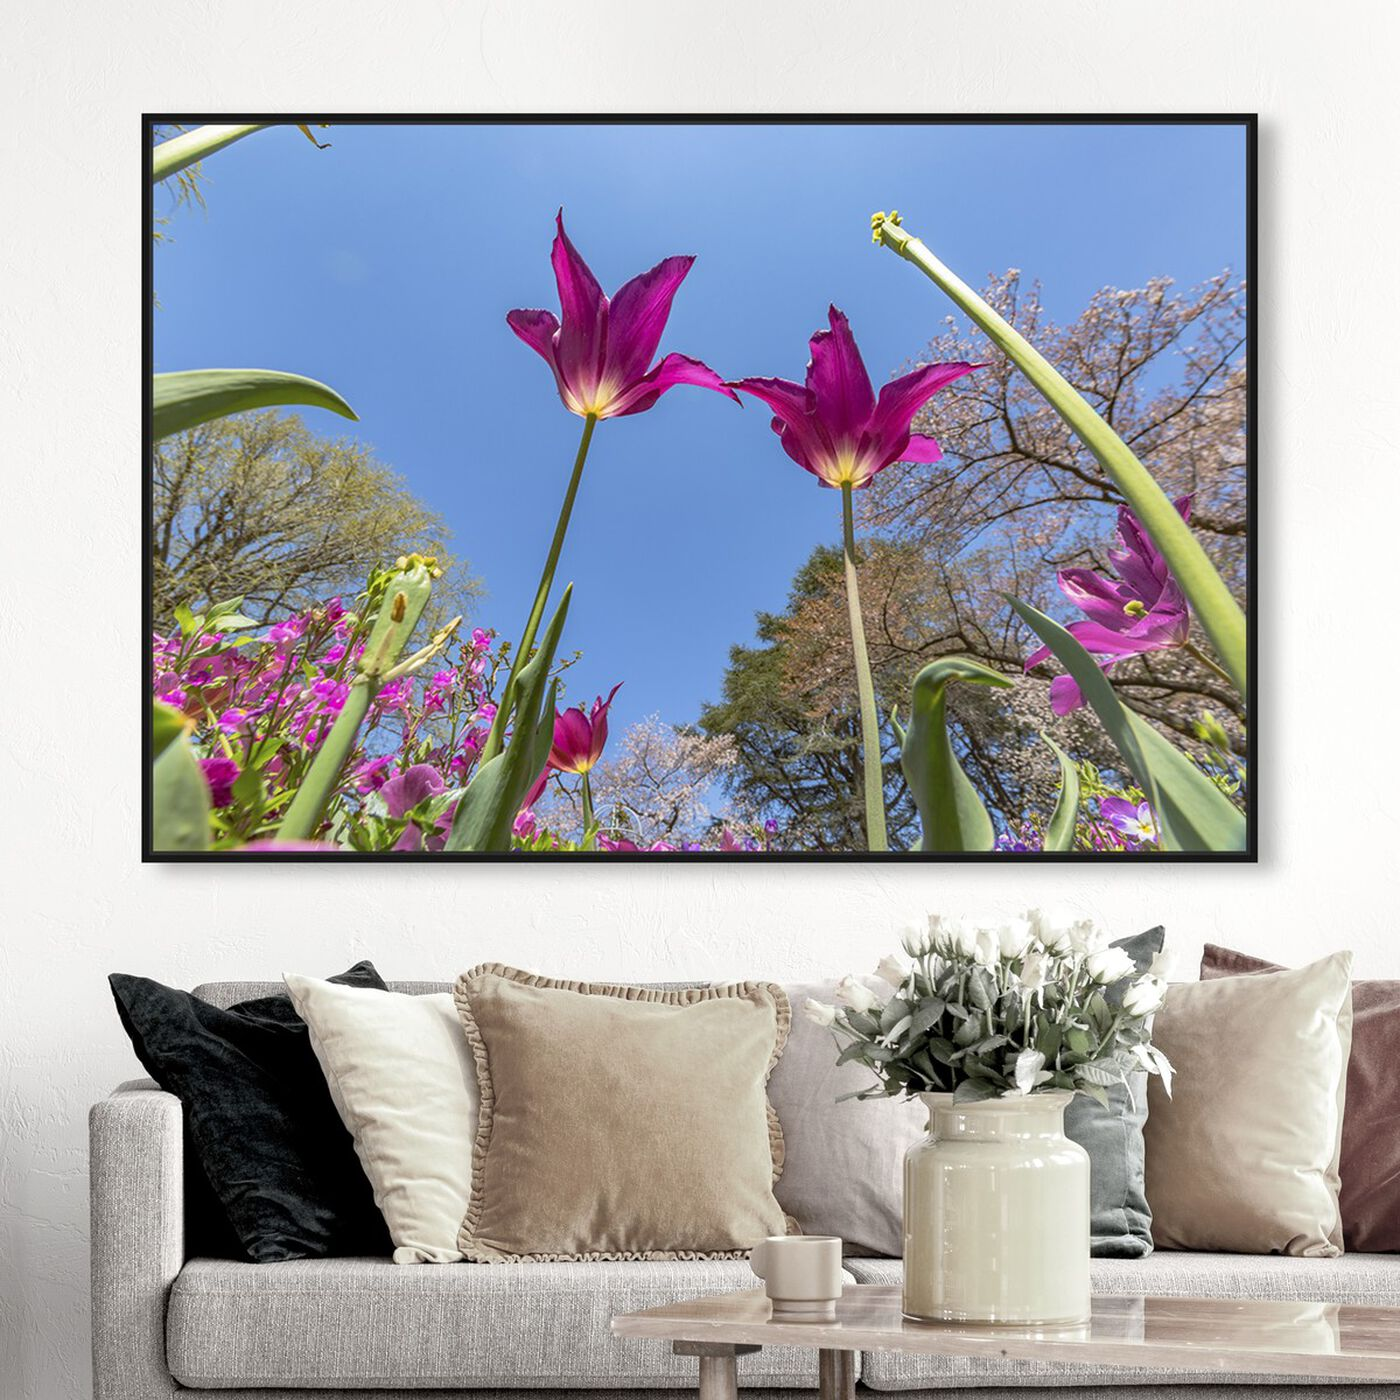 Hanging view of Curro Cardenal - Couple at the Center featuring floral and botanical and florals art.